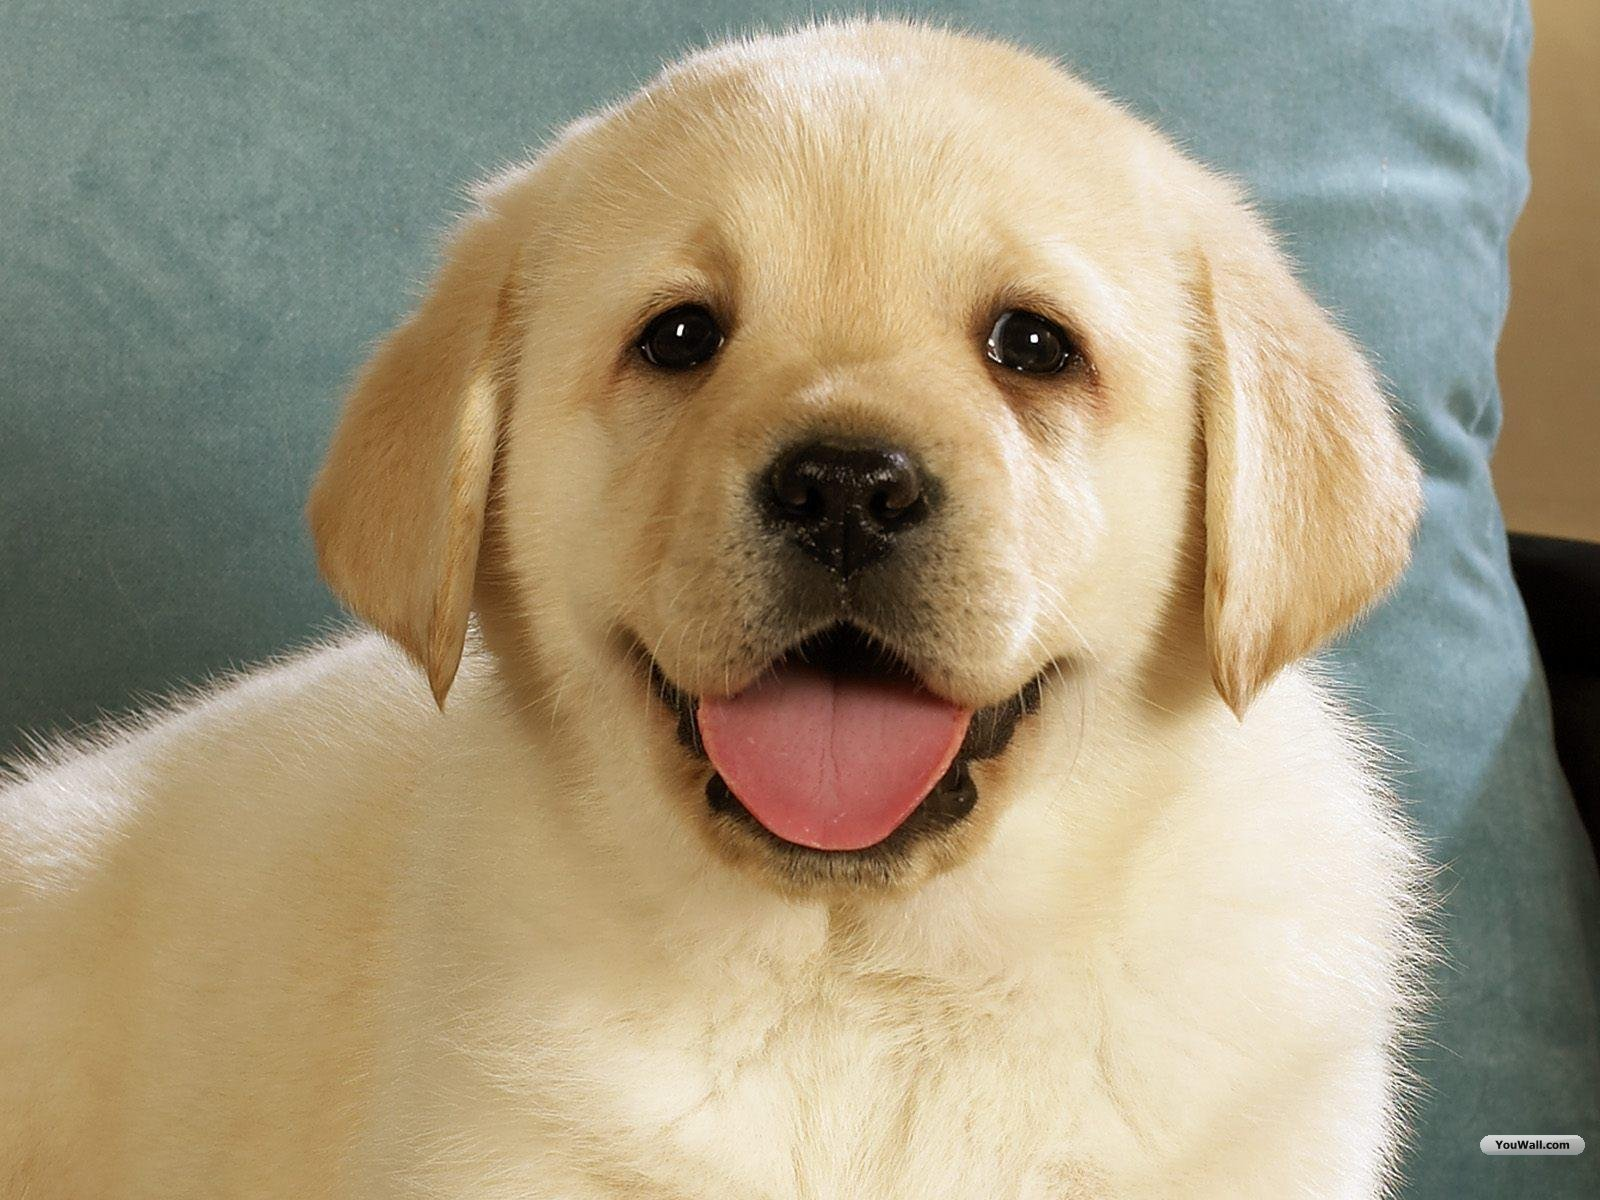 Wallpapers of cute dogs wallpapersafari for Adorable wallpapers